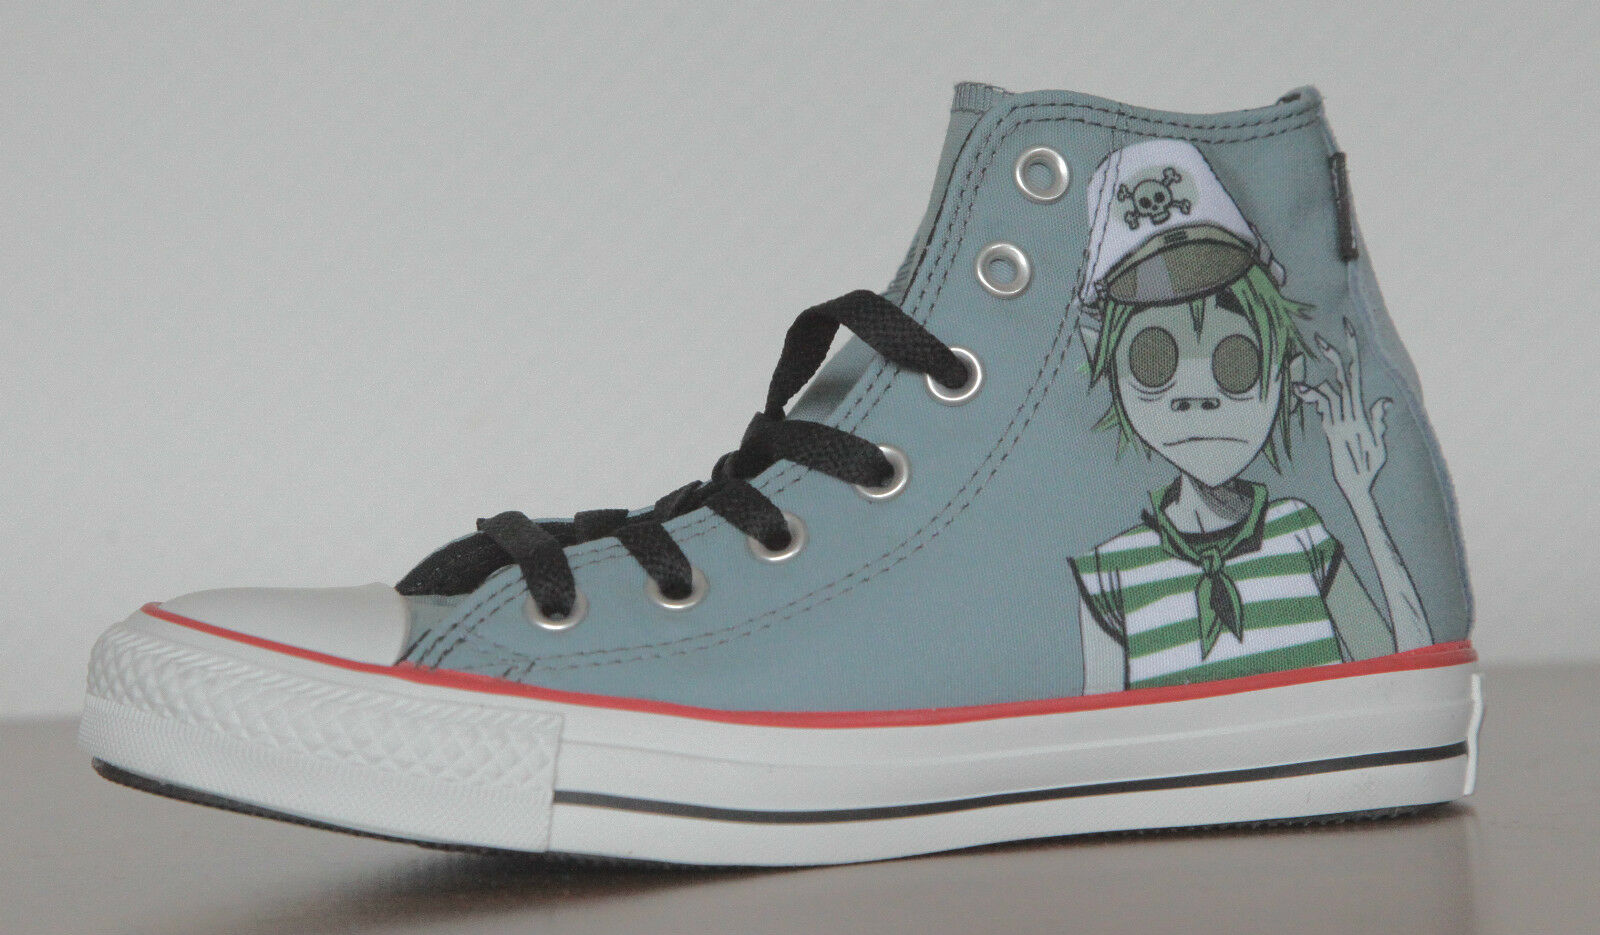 NUOVO All Star Converse Sneaker Chucks 132177c CT HI lead Gorillaz tg. 35